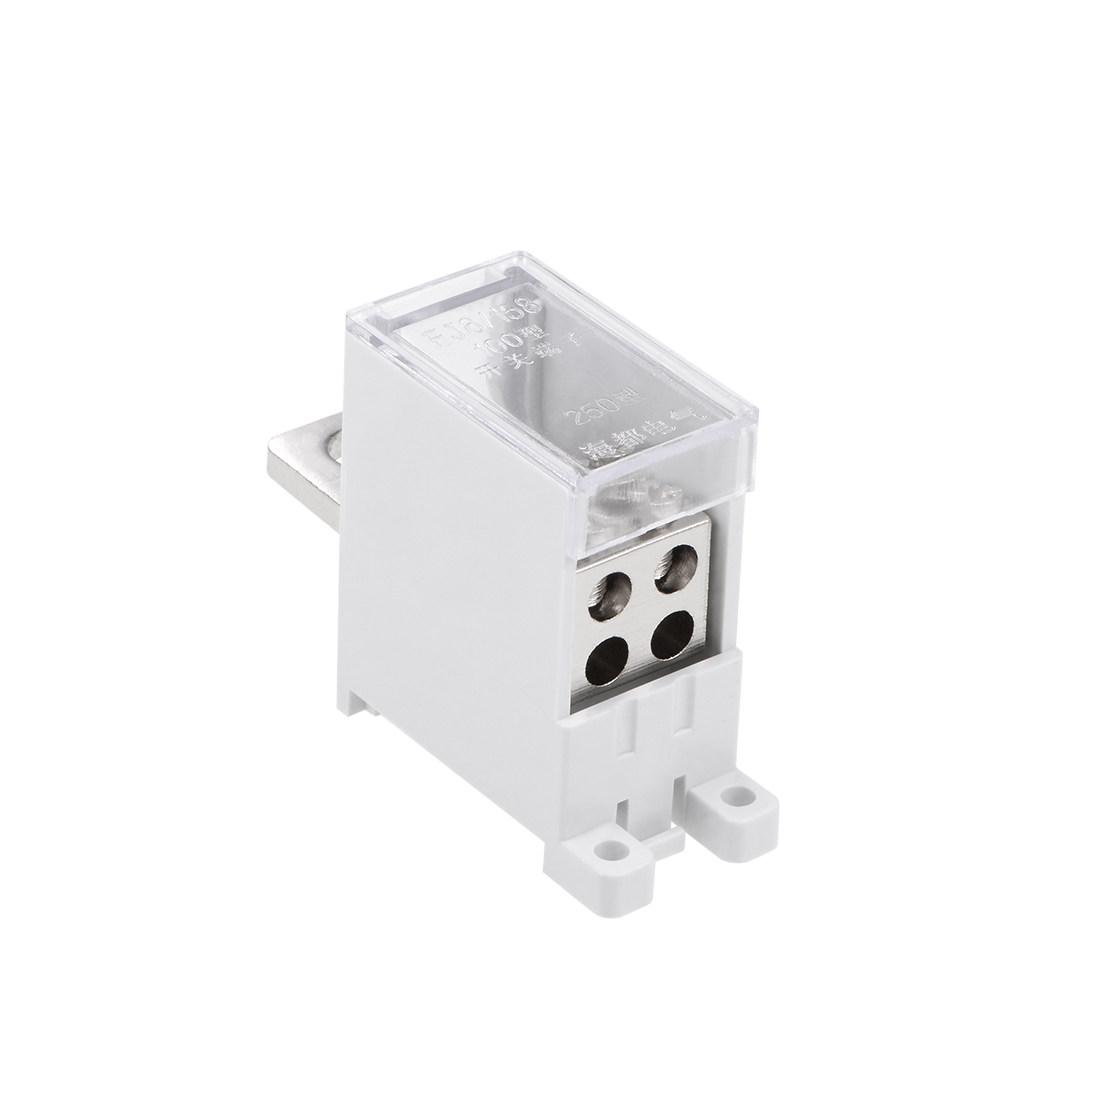 1 In 4 Out DIN Rail Terminal Blocks 250A Max Input Distribution Block